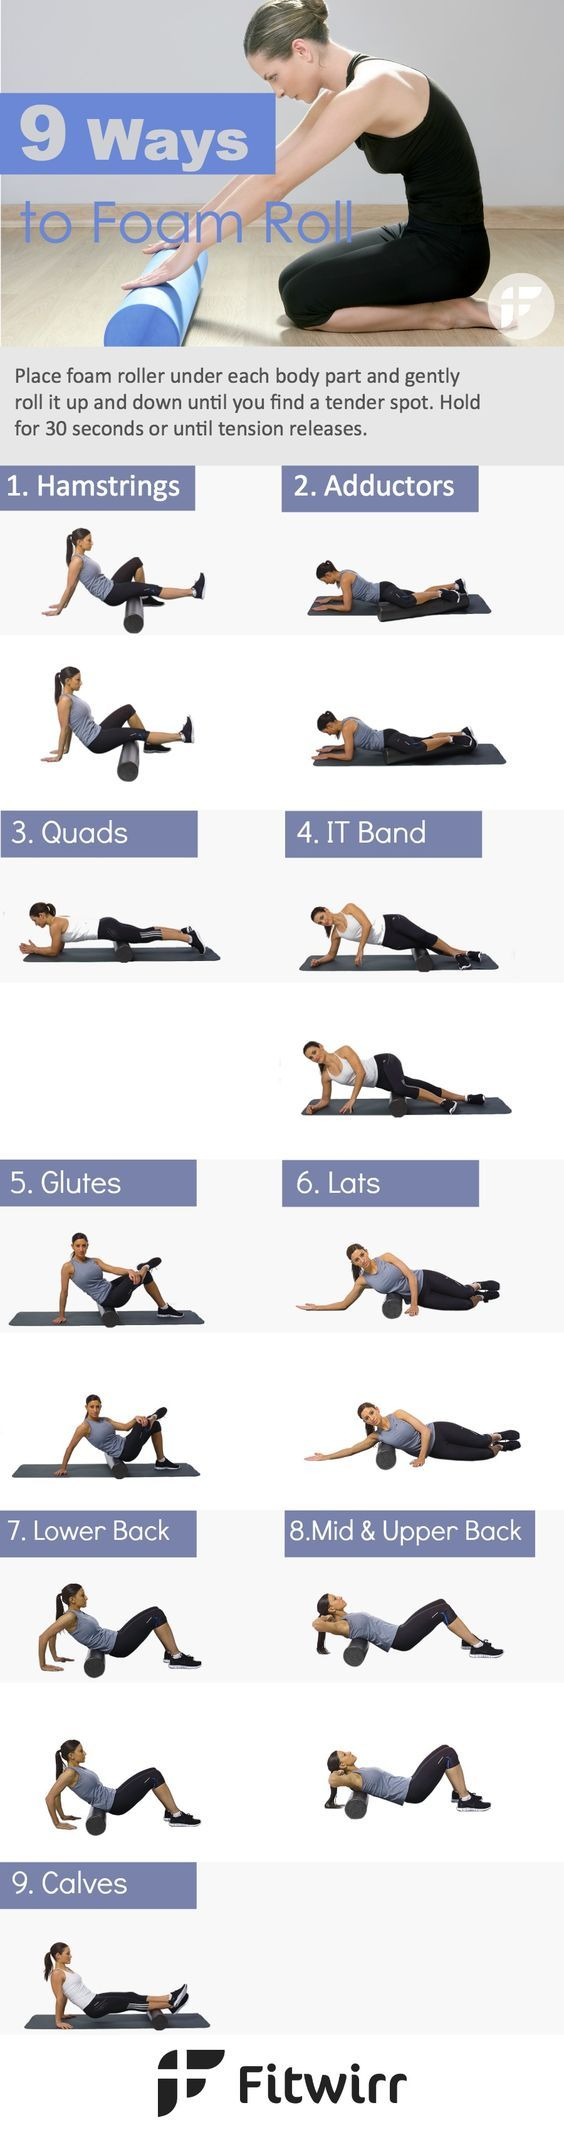 9 Best Foam Roller Exercises for Muscle Aches-While frequent visits to deep…